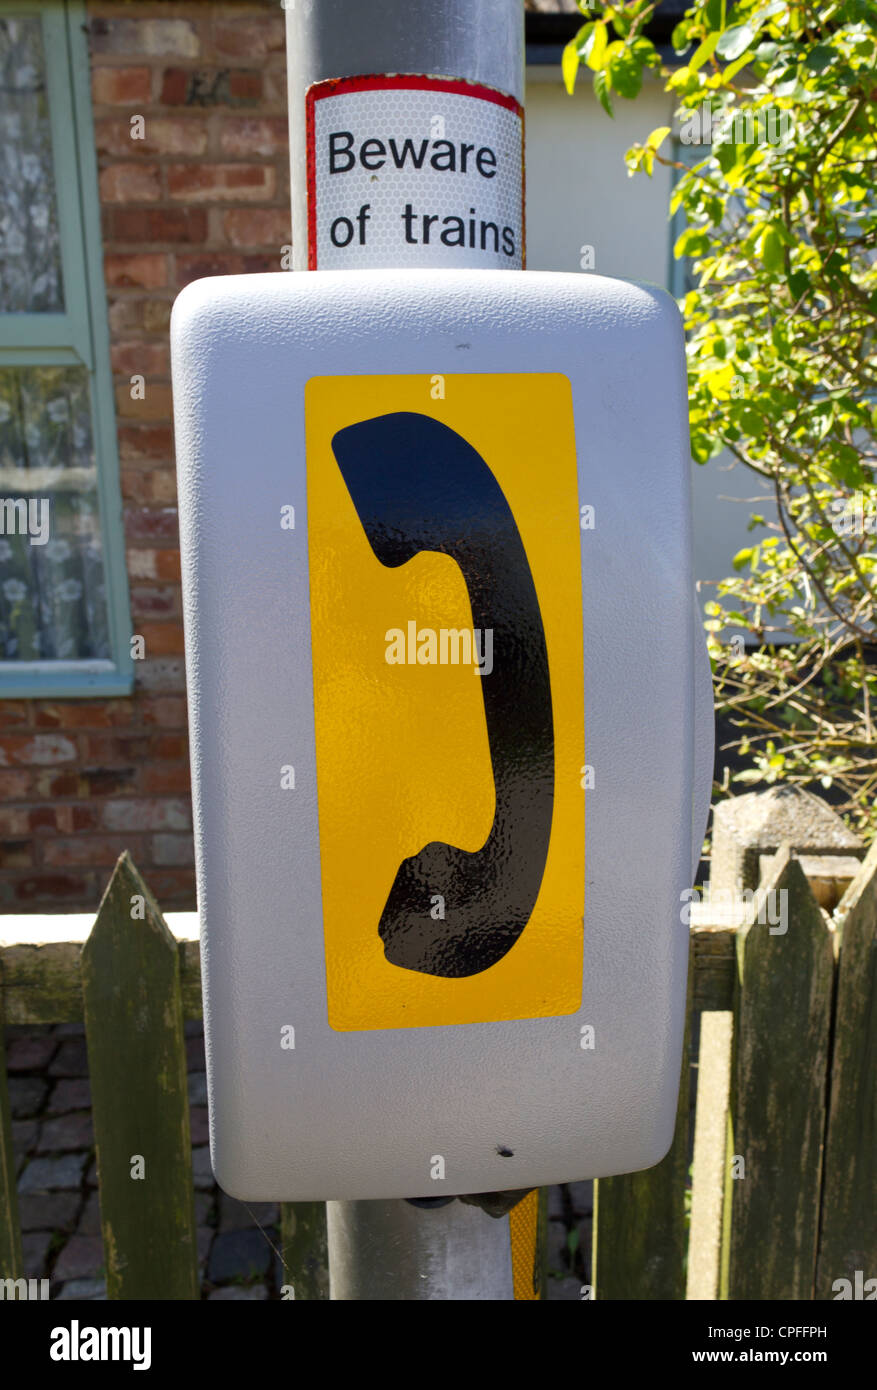 An emergency phone, commonly found near a railway crossing